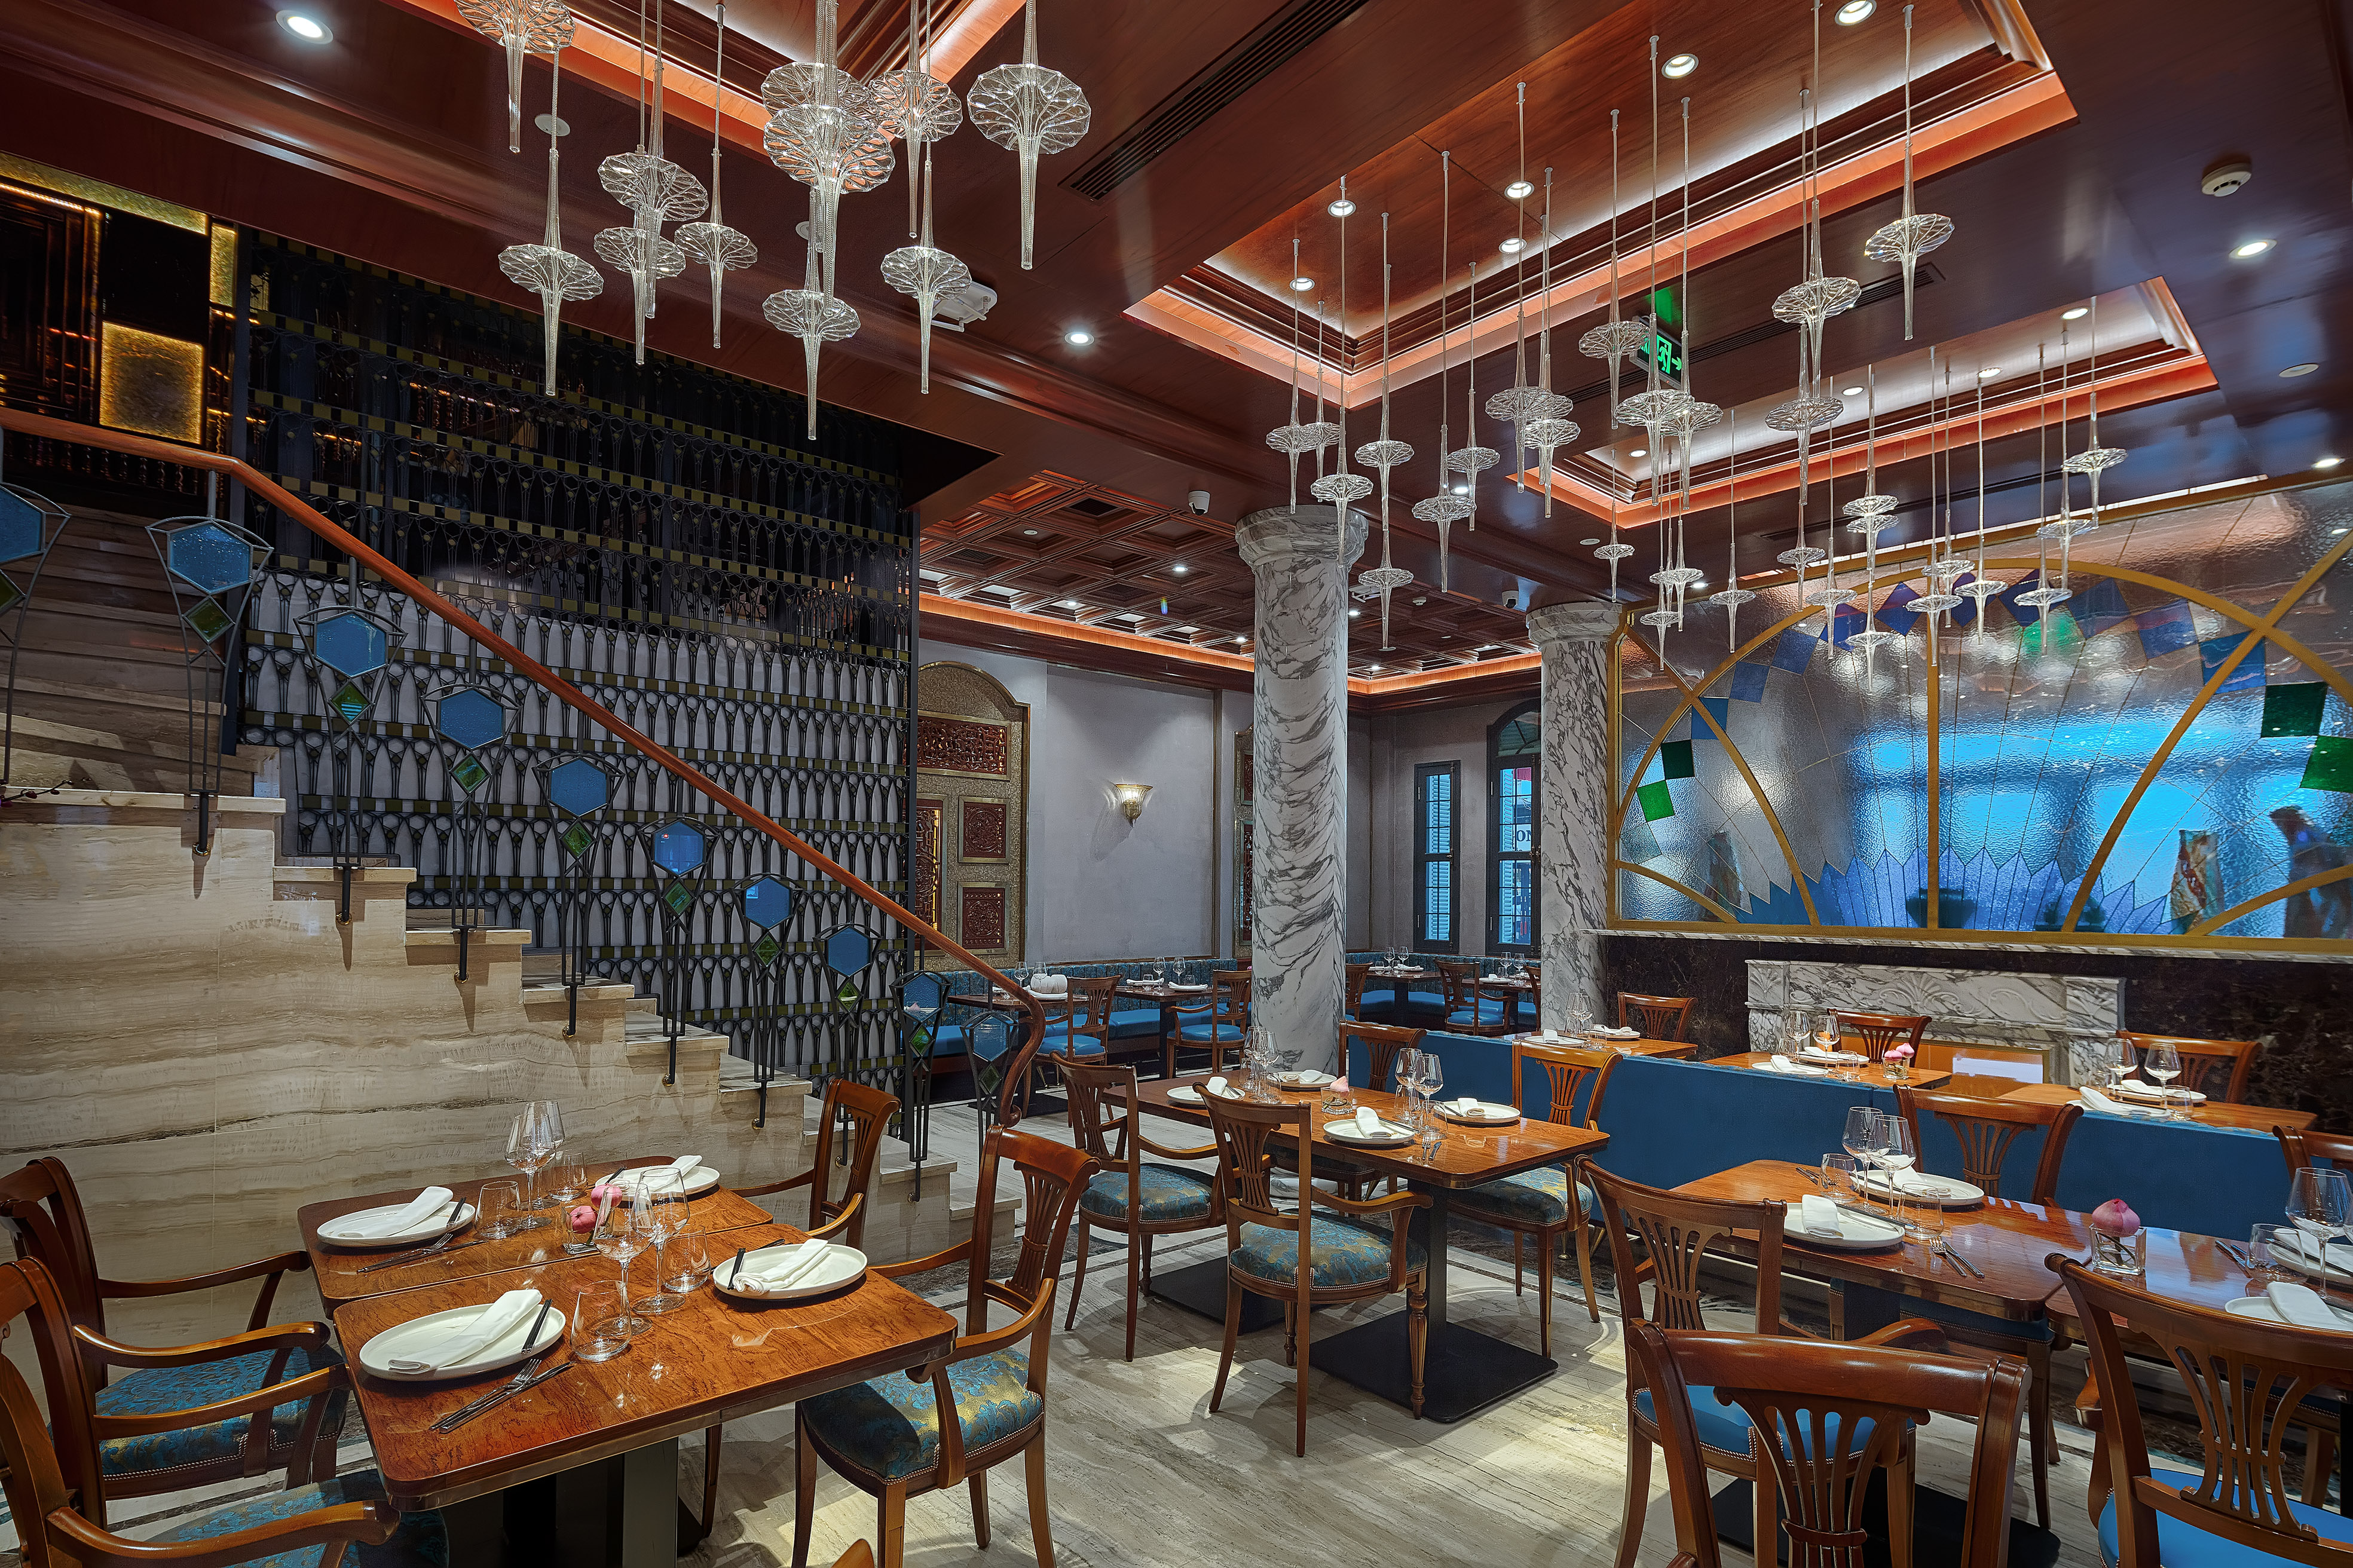 Luke nguyen opens his first restaurant in vietnam west - Home restaurant normativa ...